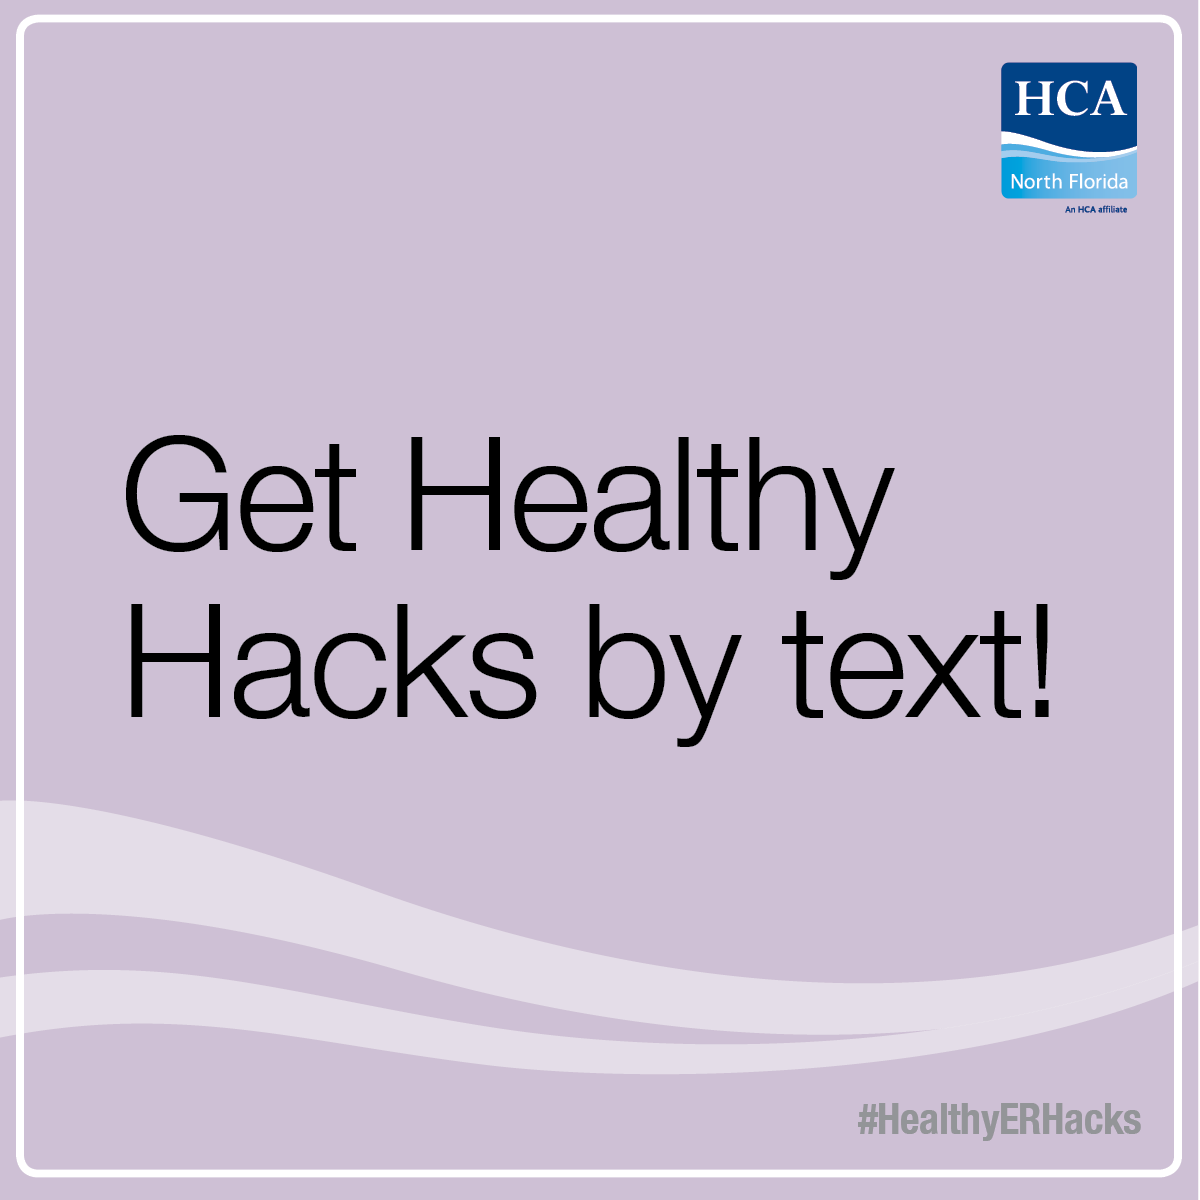 Sign up to get healthy ticks and tricks twice a week! #HealthyERHacks